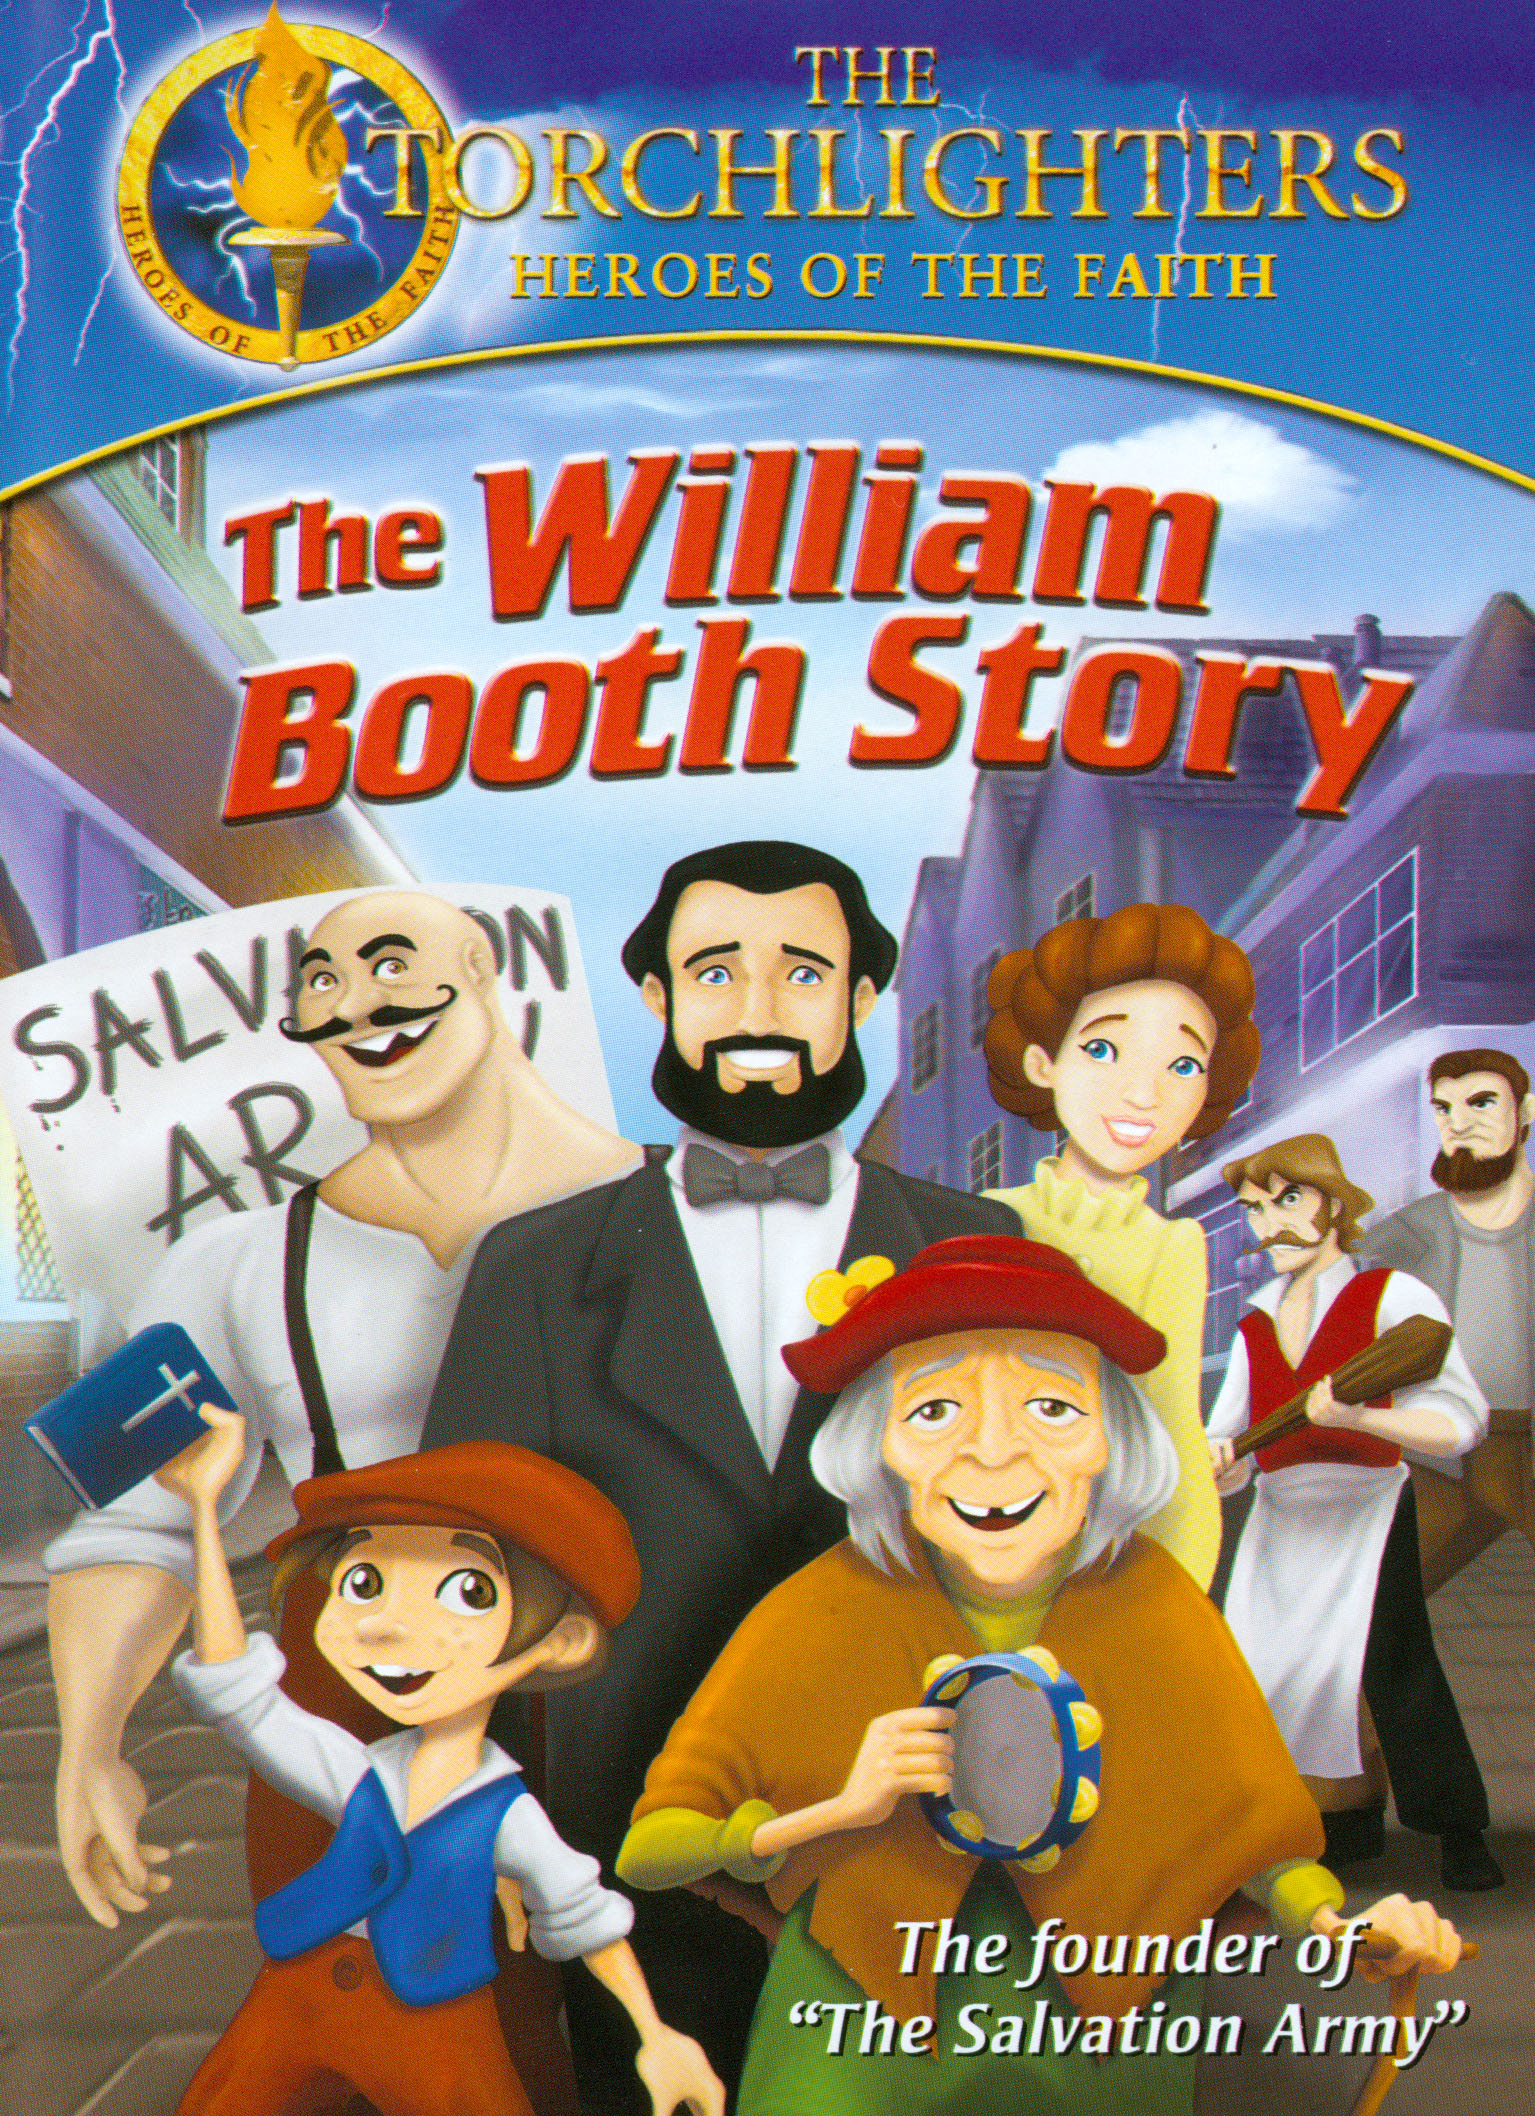 The Torchlighters: The William Booth Story